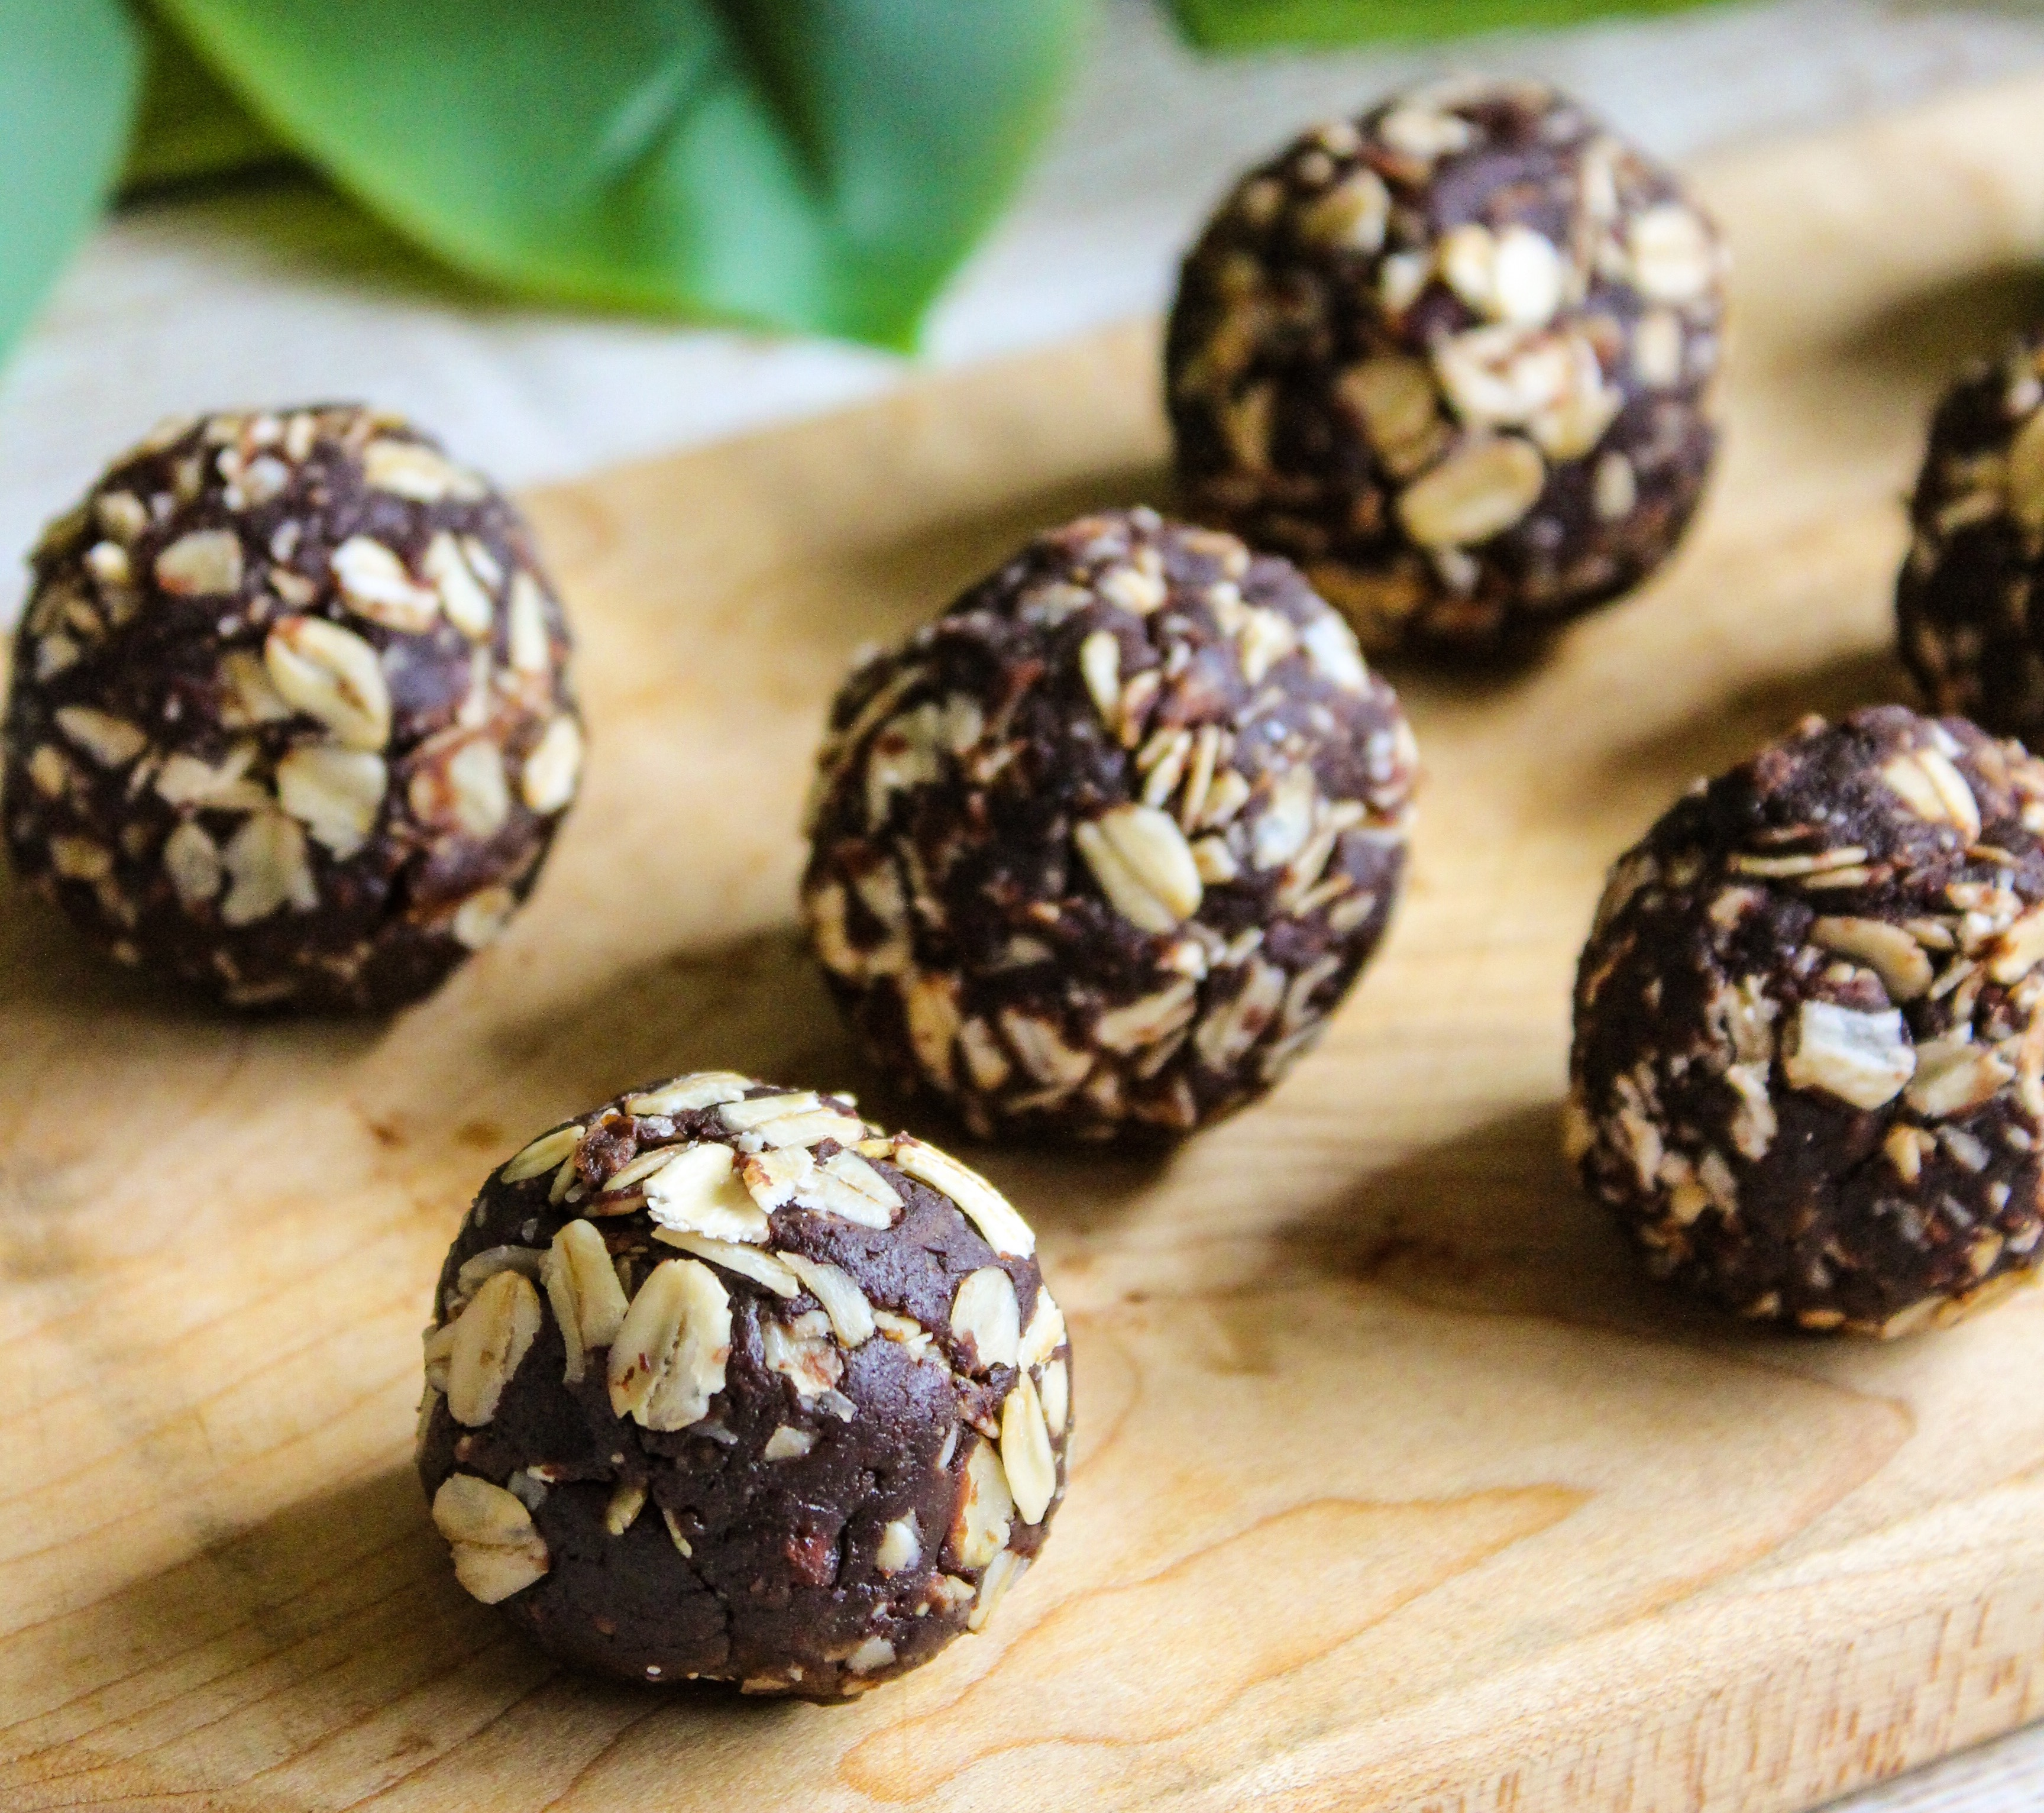 Chocolate Peanut Butter Energy Bites from the Wholesome Culture Cookbook